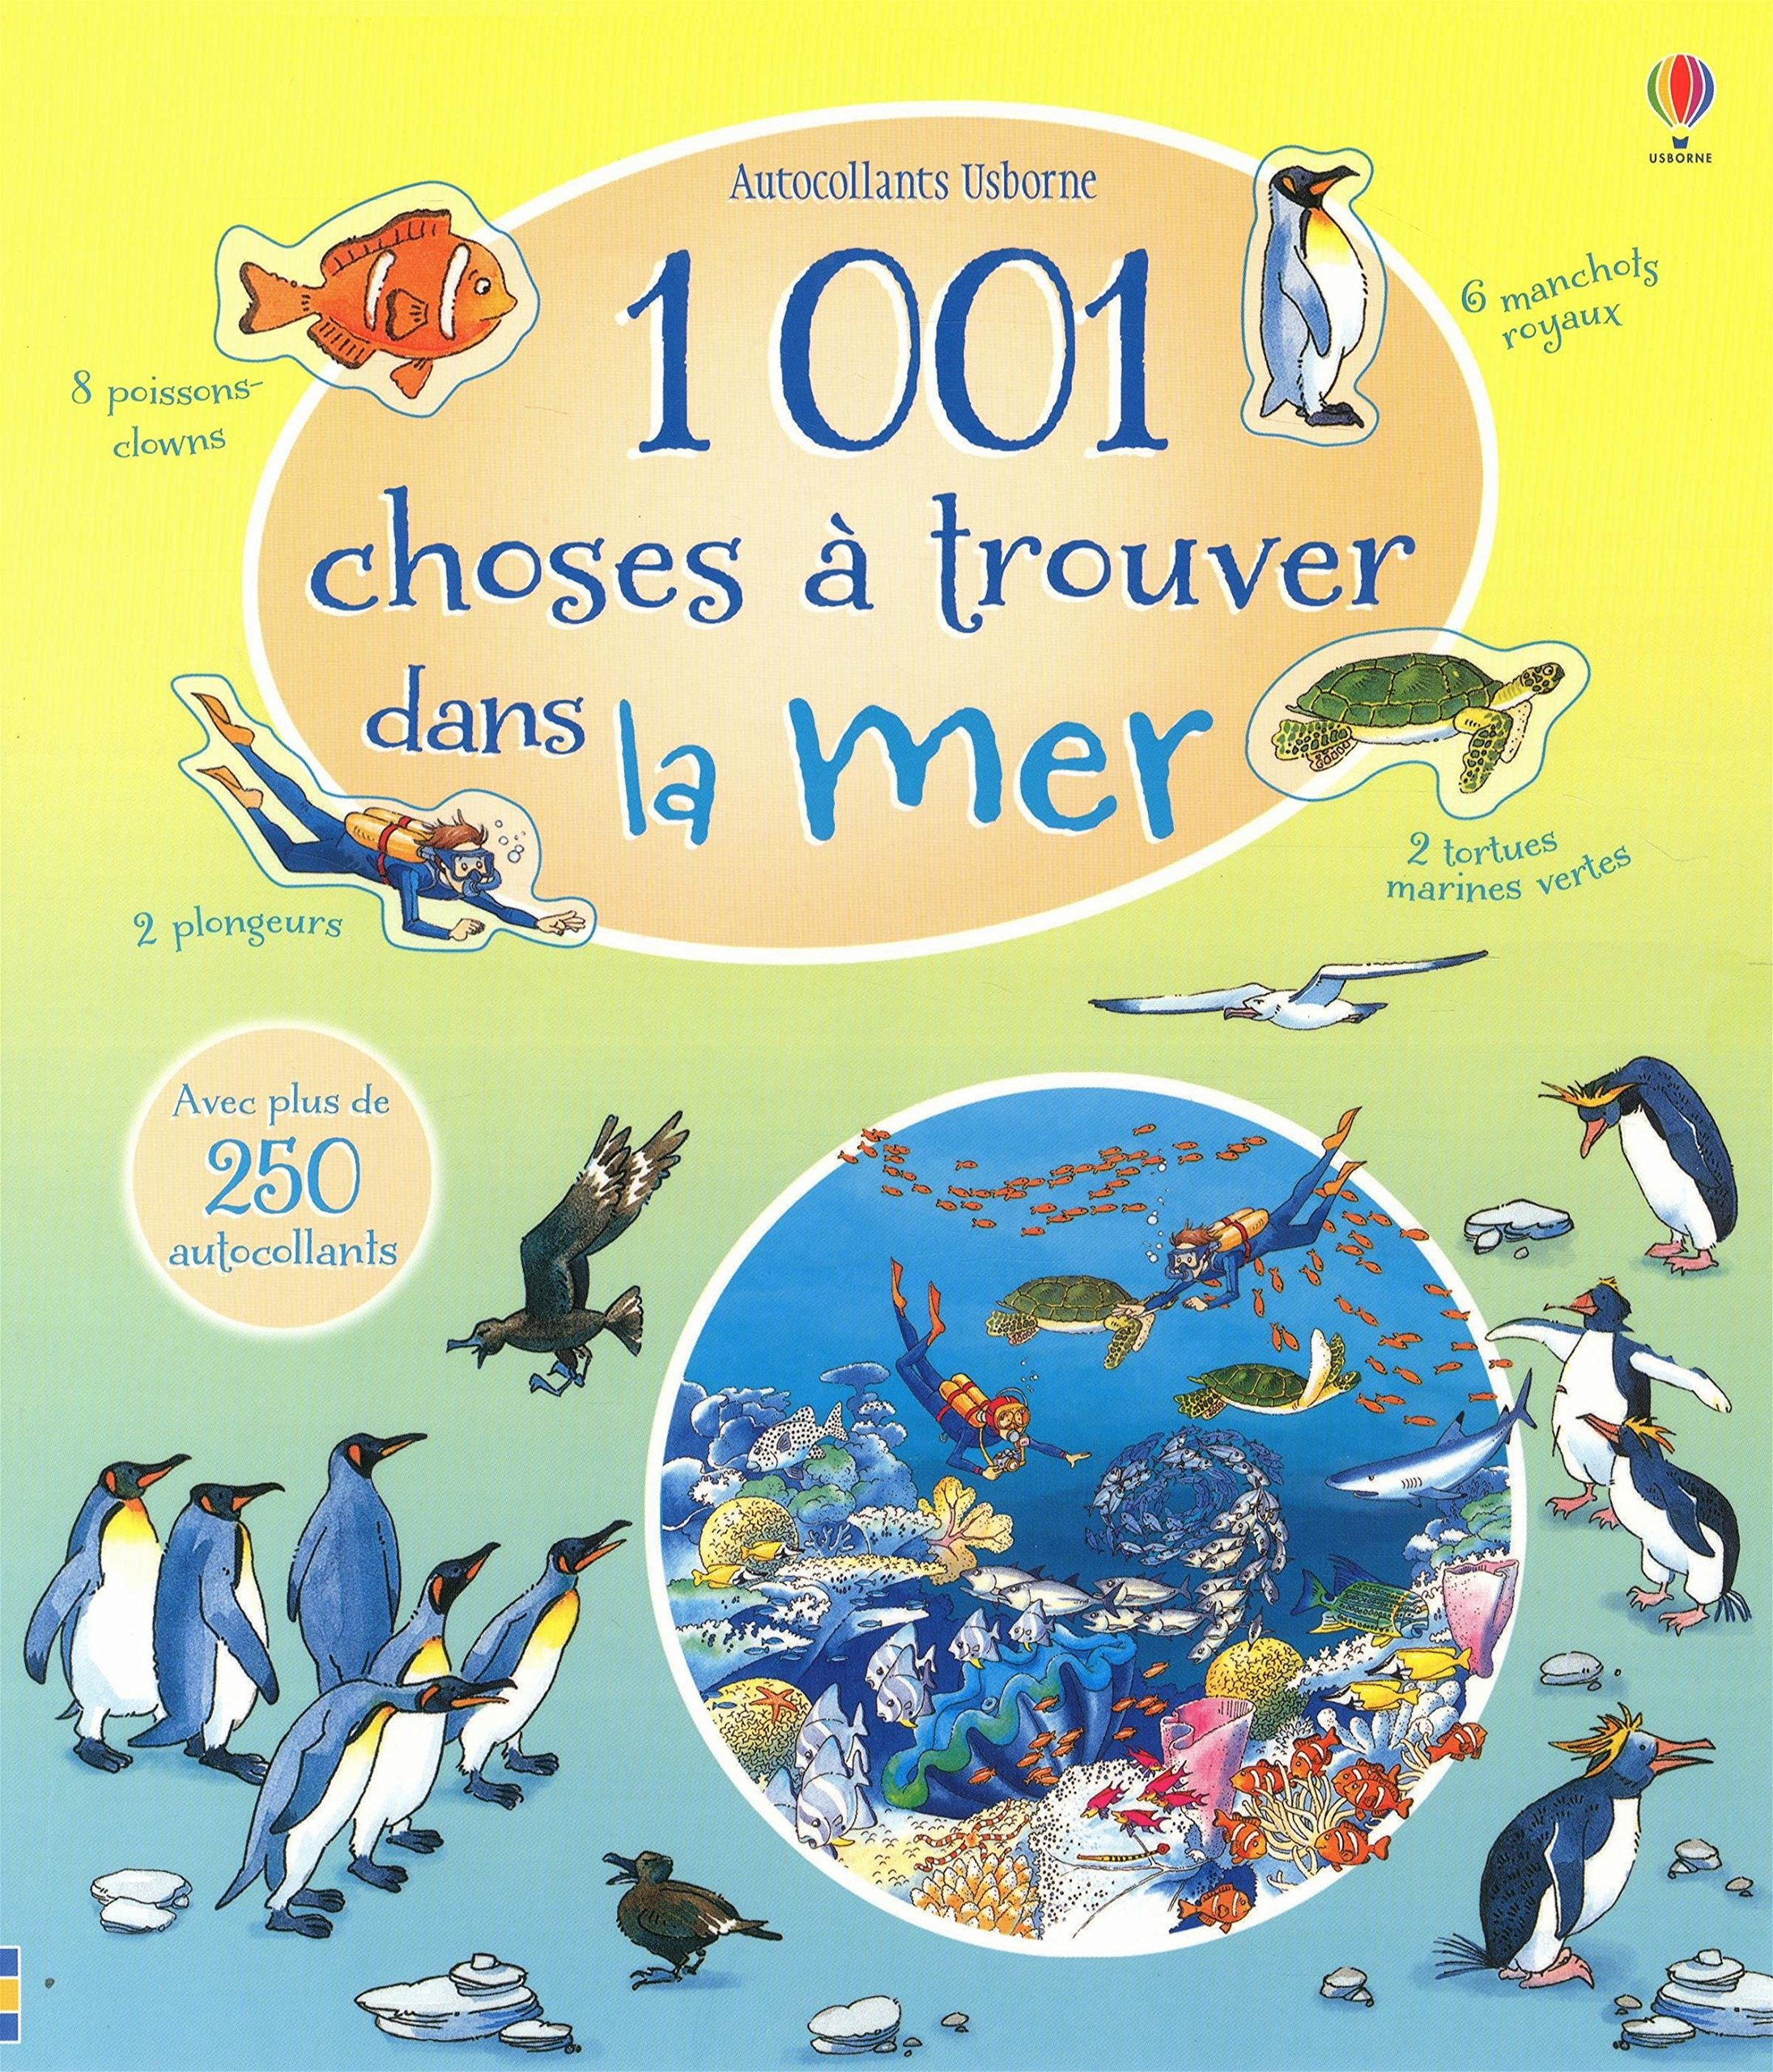 1 001 choses à trouver dans la mer - Autocollants Usborne: Amazon.fr: Katie  Daynes, Teri Gower, Virginie Clauzel: Livres